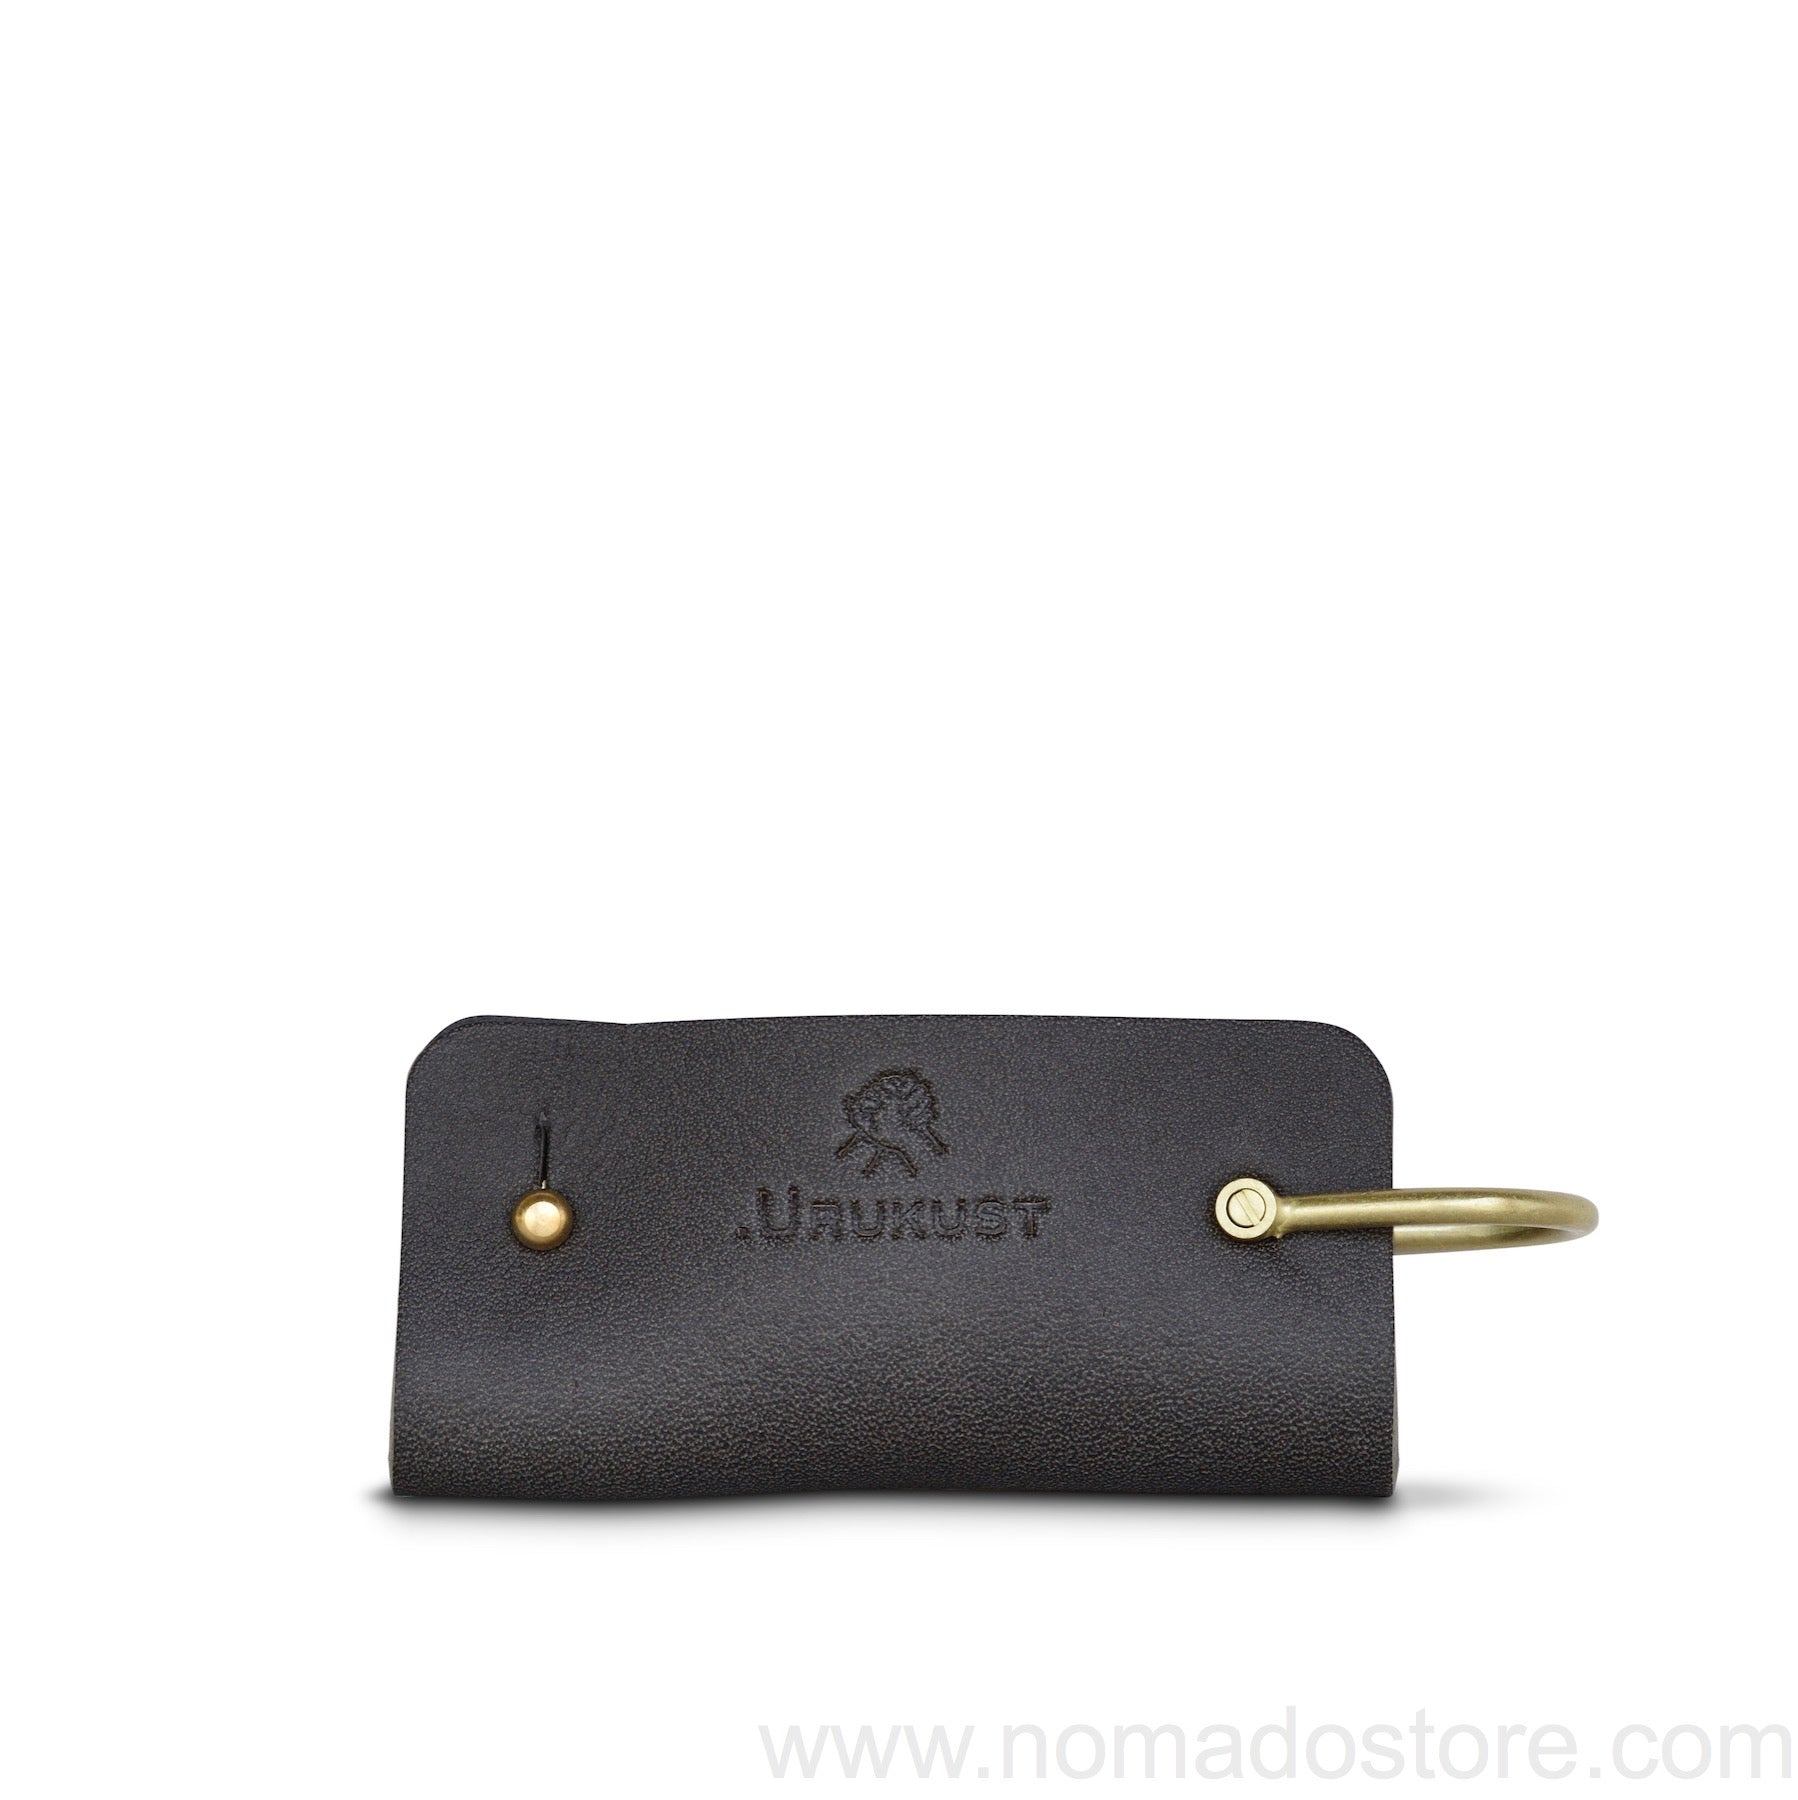 .Urukust Ltd Edition key Case (Olive Ash) - NOMADO Store